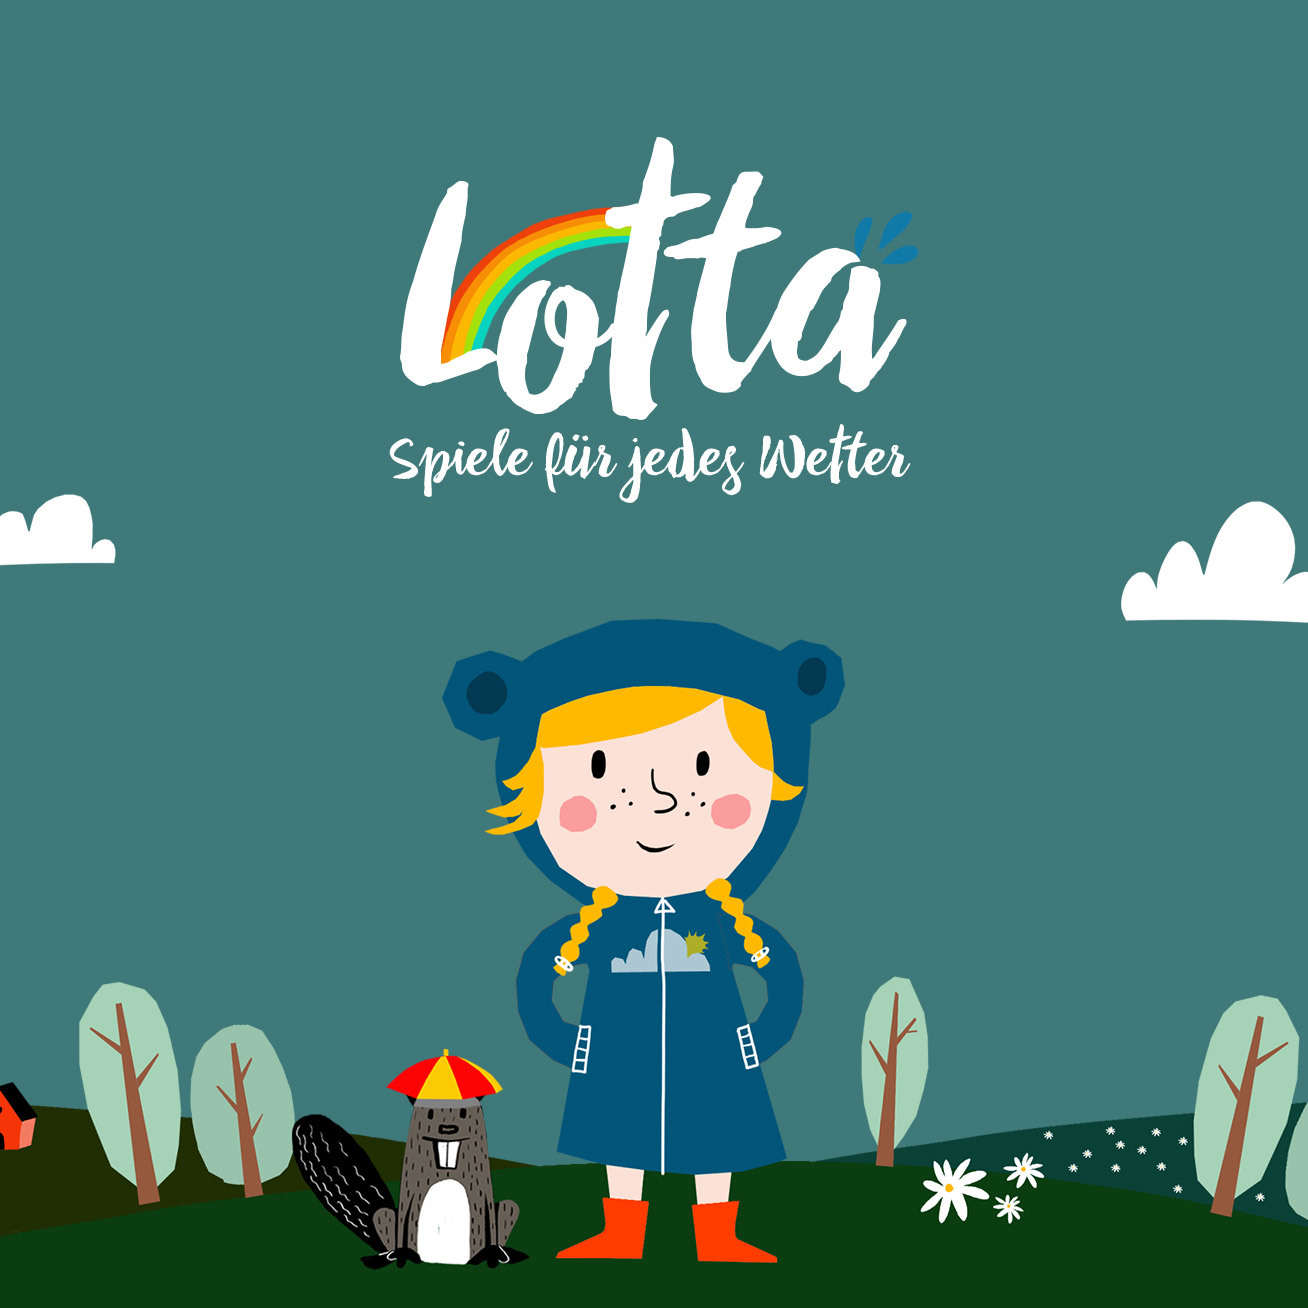 Wetter.de Lotta – Games for all weathers